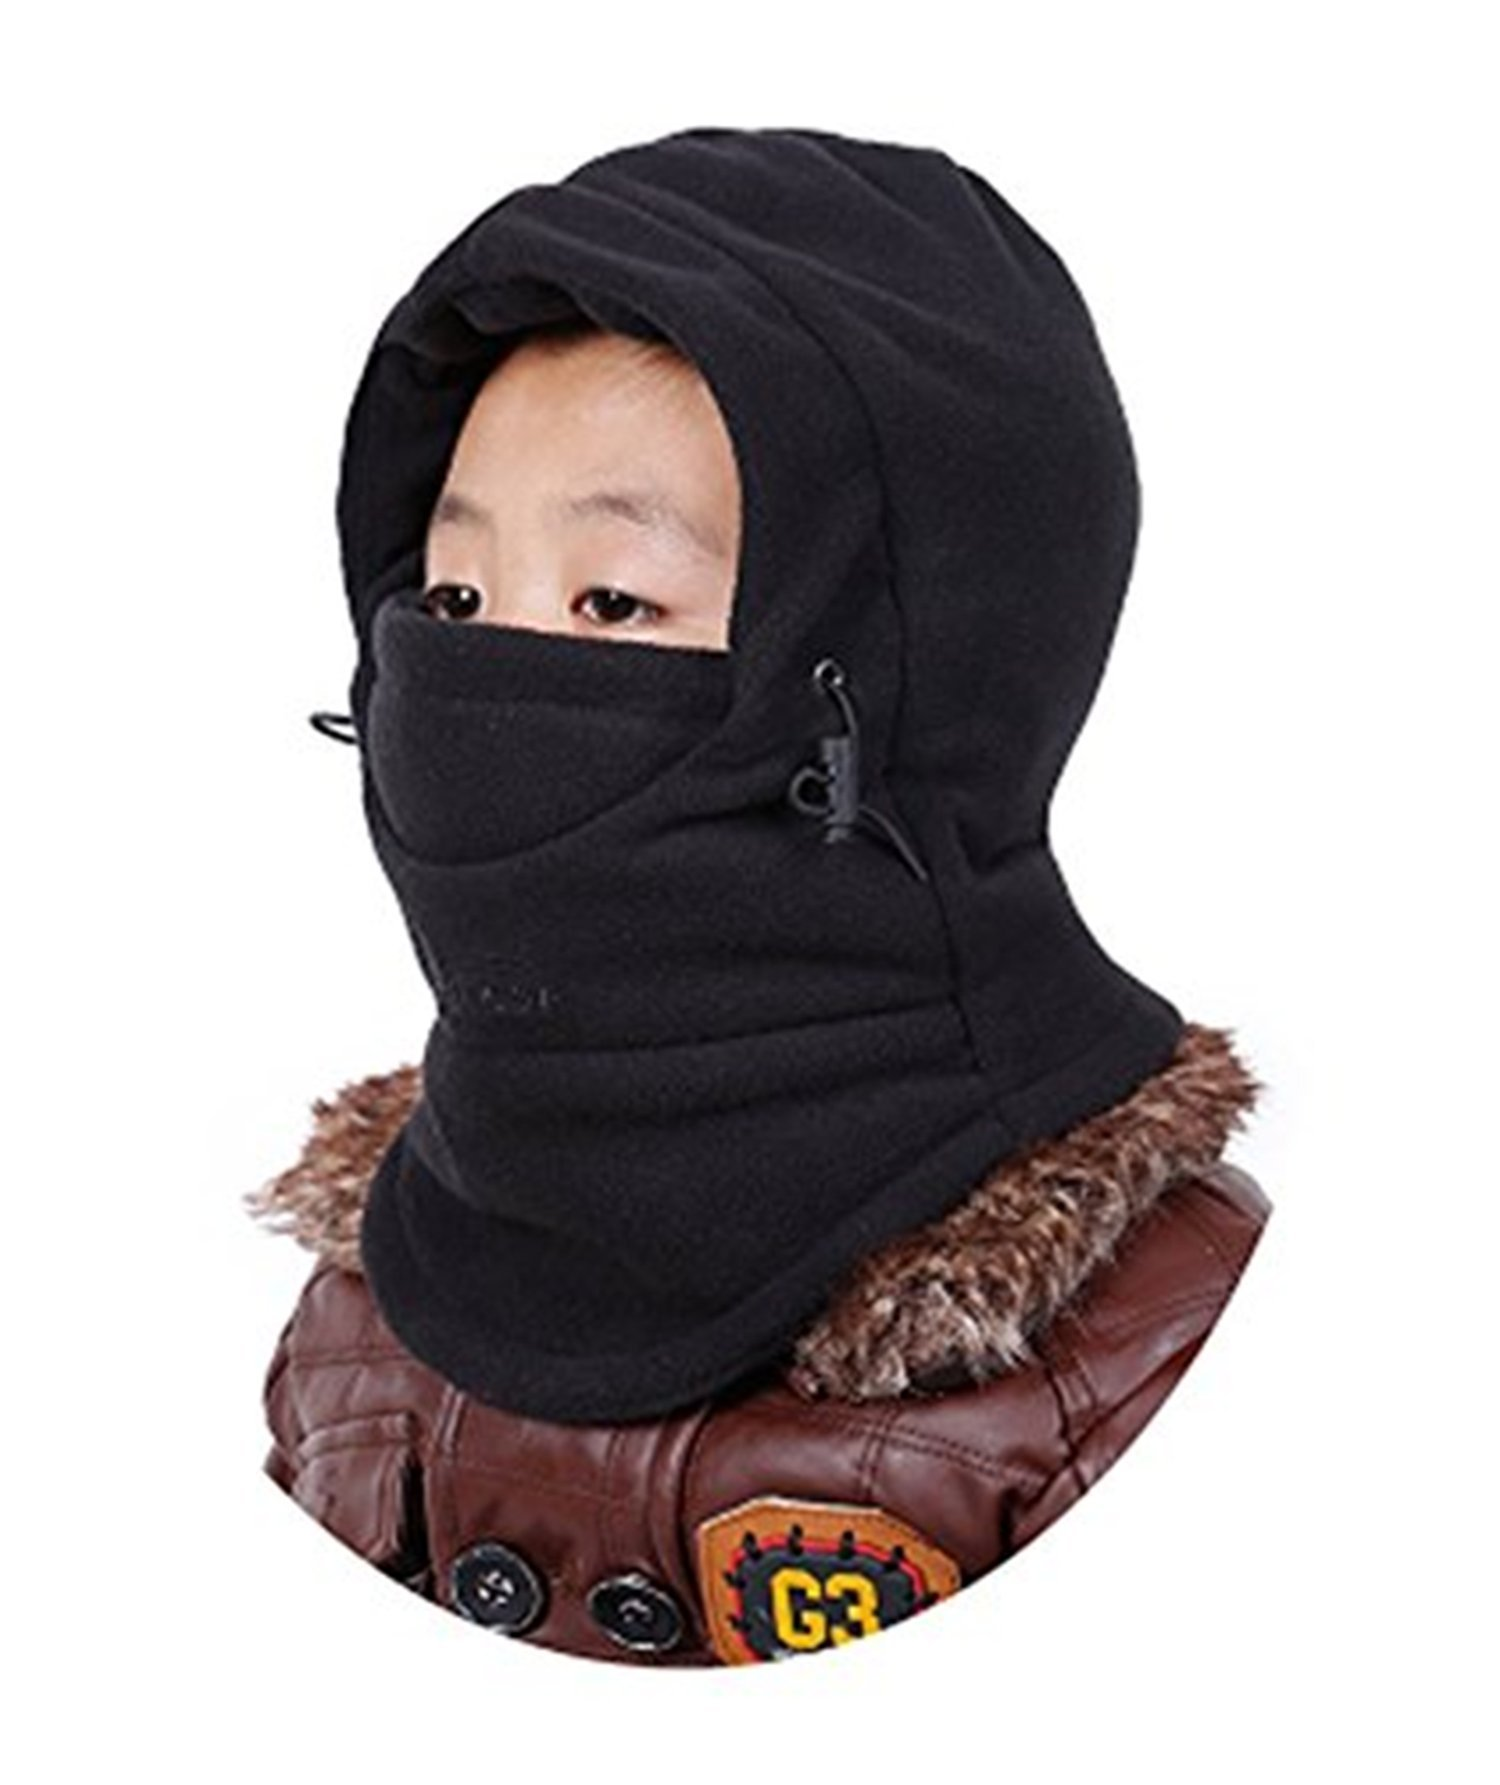 ZZLAY Children's Balaclavas Hat Thick Thermal Windproof Ski Cycling Face Mask Caps Hood Cover Adjustable Cap